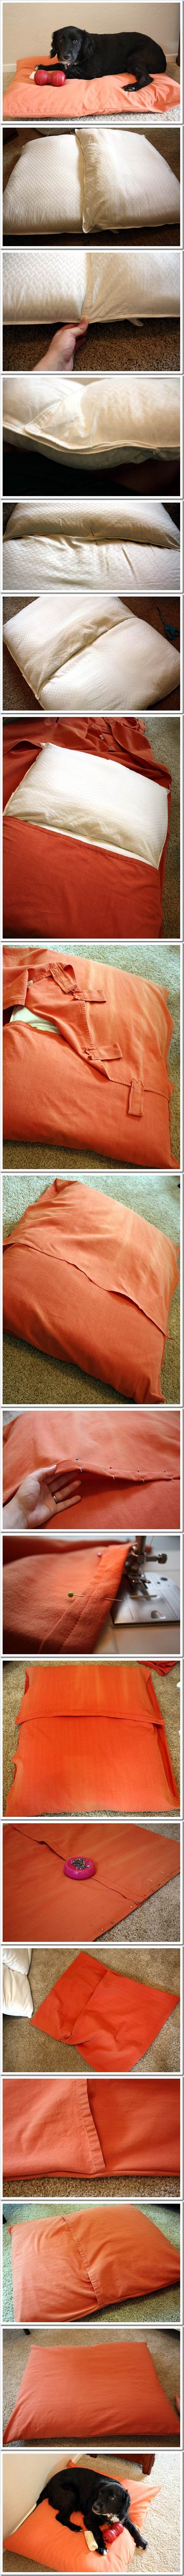 DIY Cozy Dog Bed 2